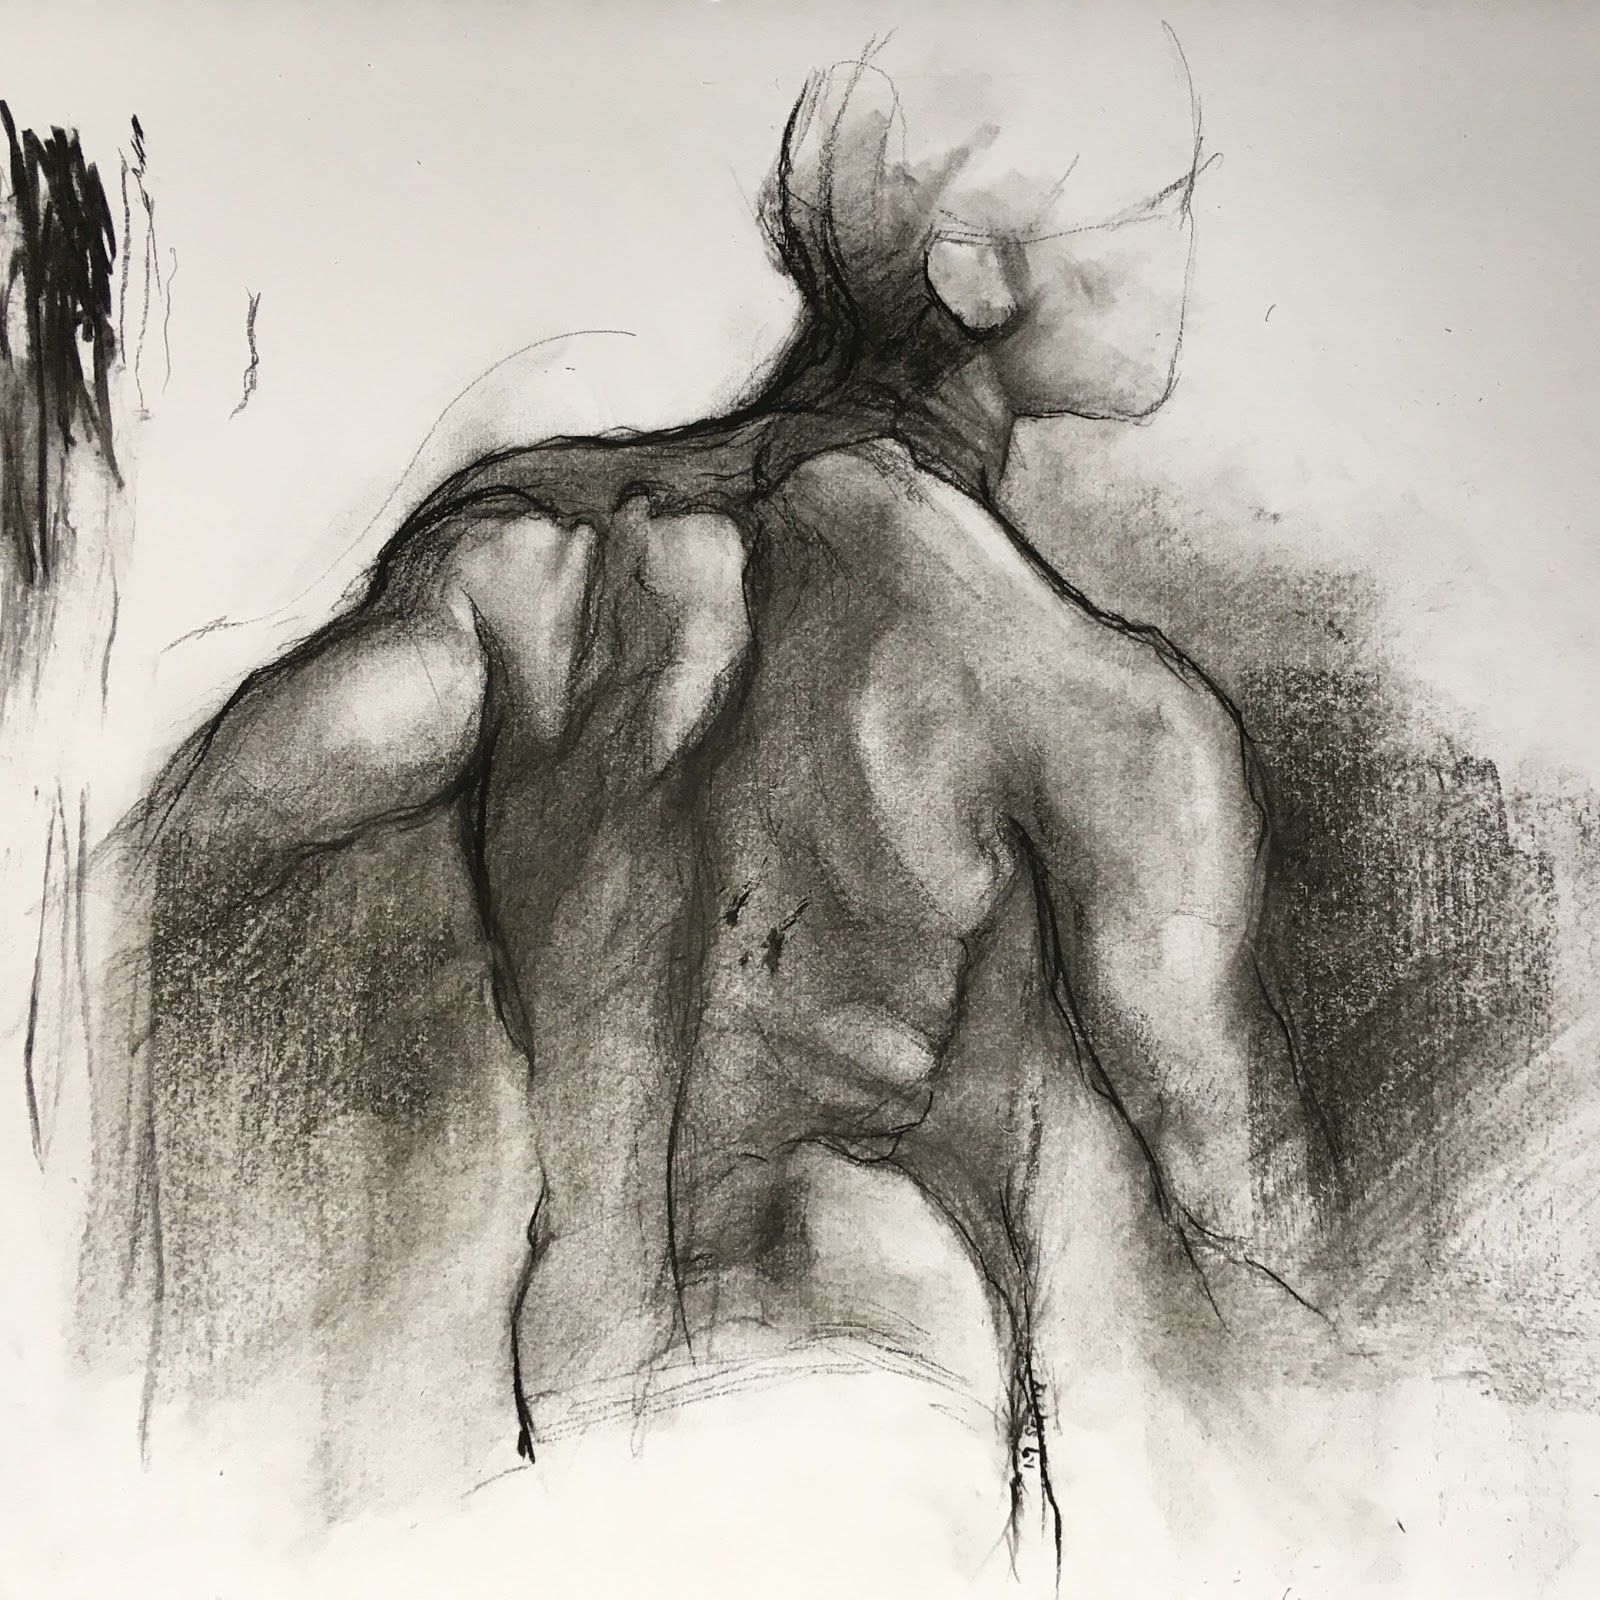 Sketch No.3 - Figure Sketch, Charcoal on Paper, available